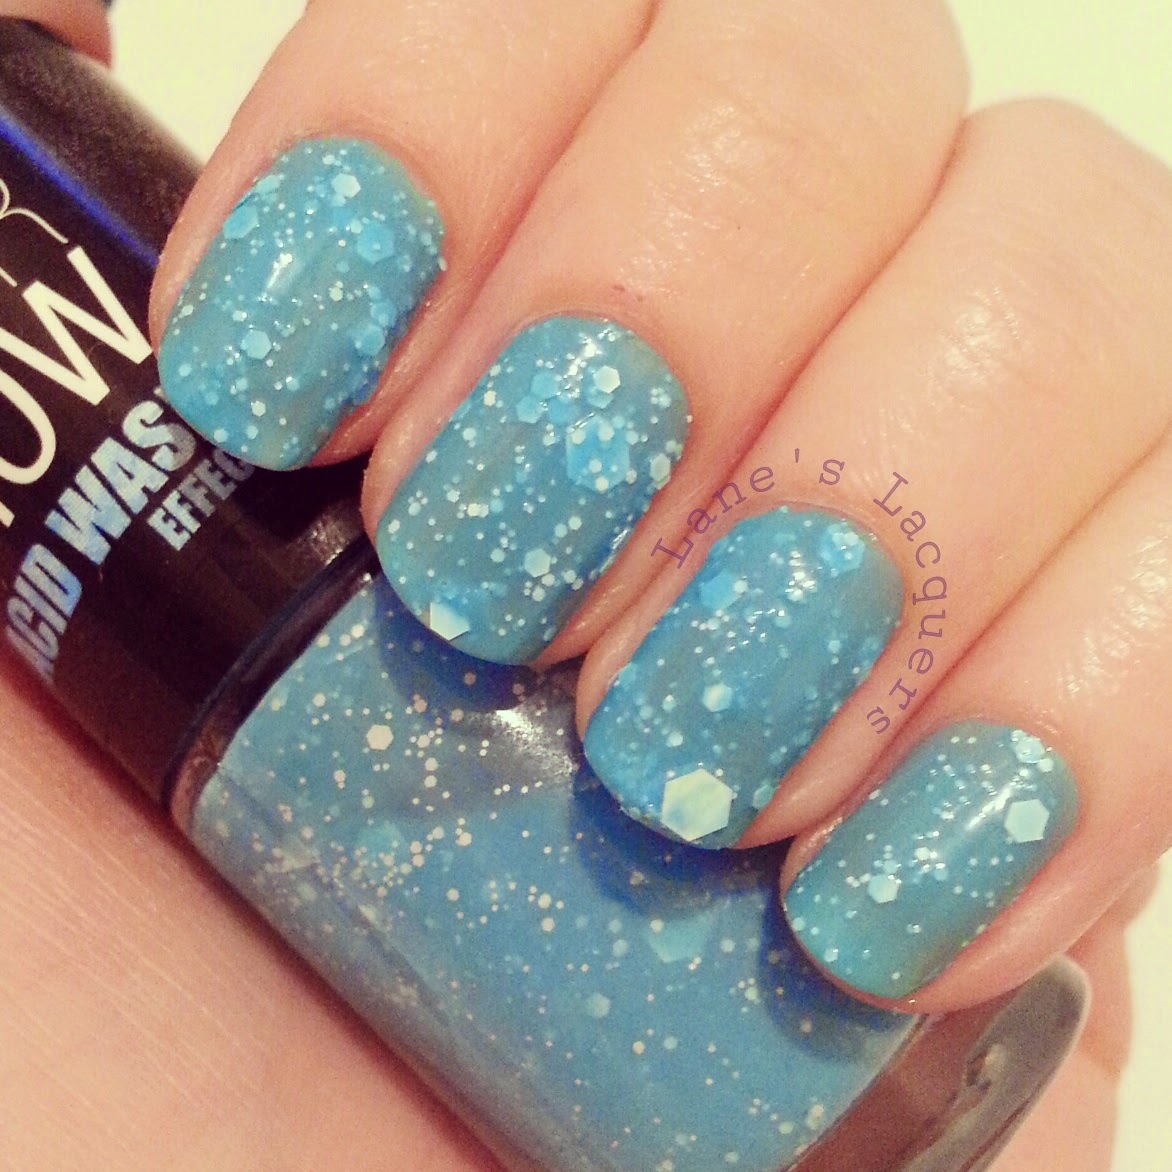 maybelline-colorshow-acid-wash-ripped-tide-swatch-mancicure (1)